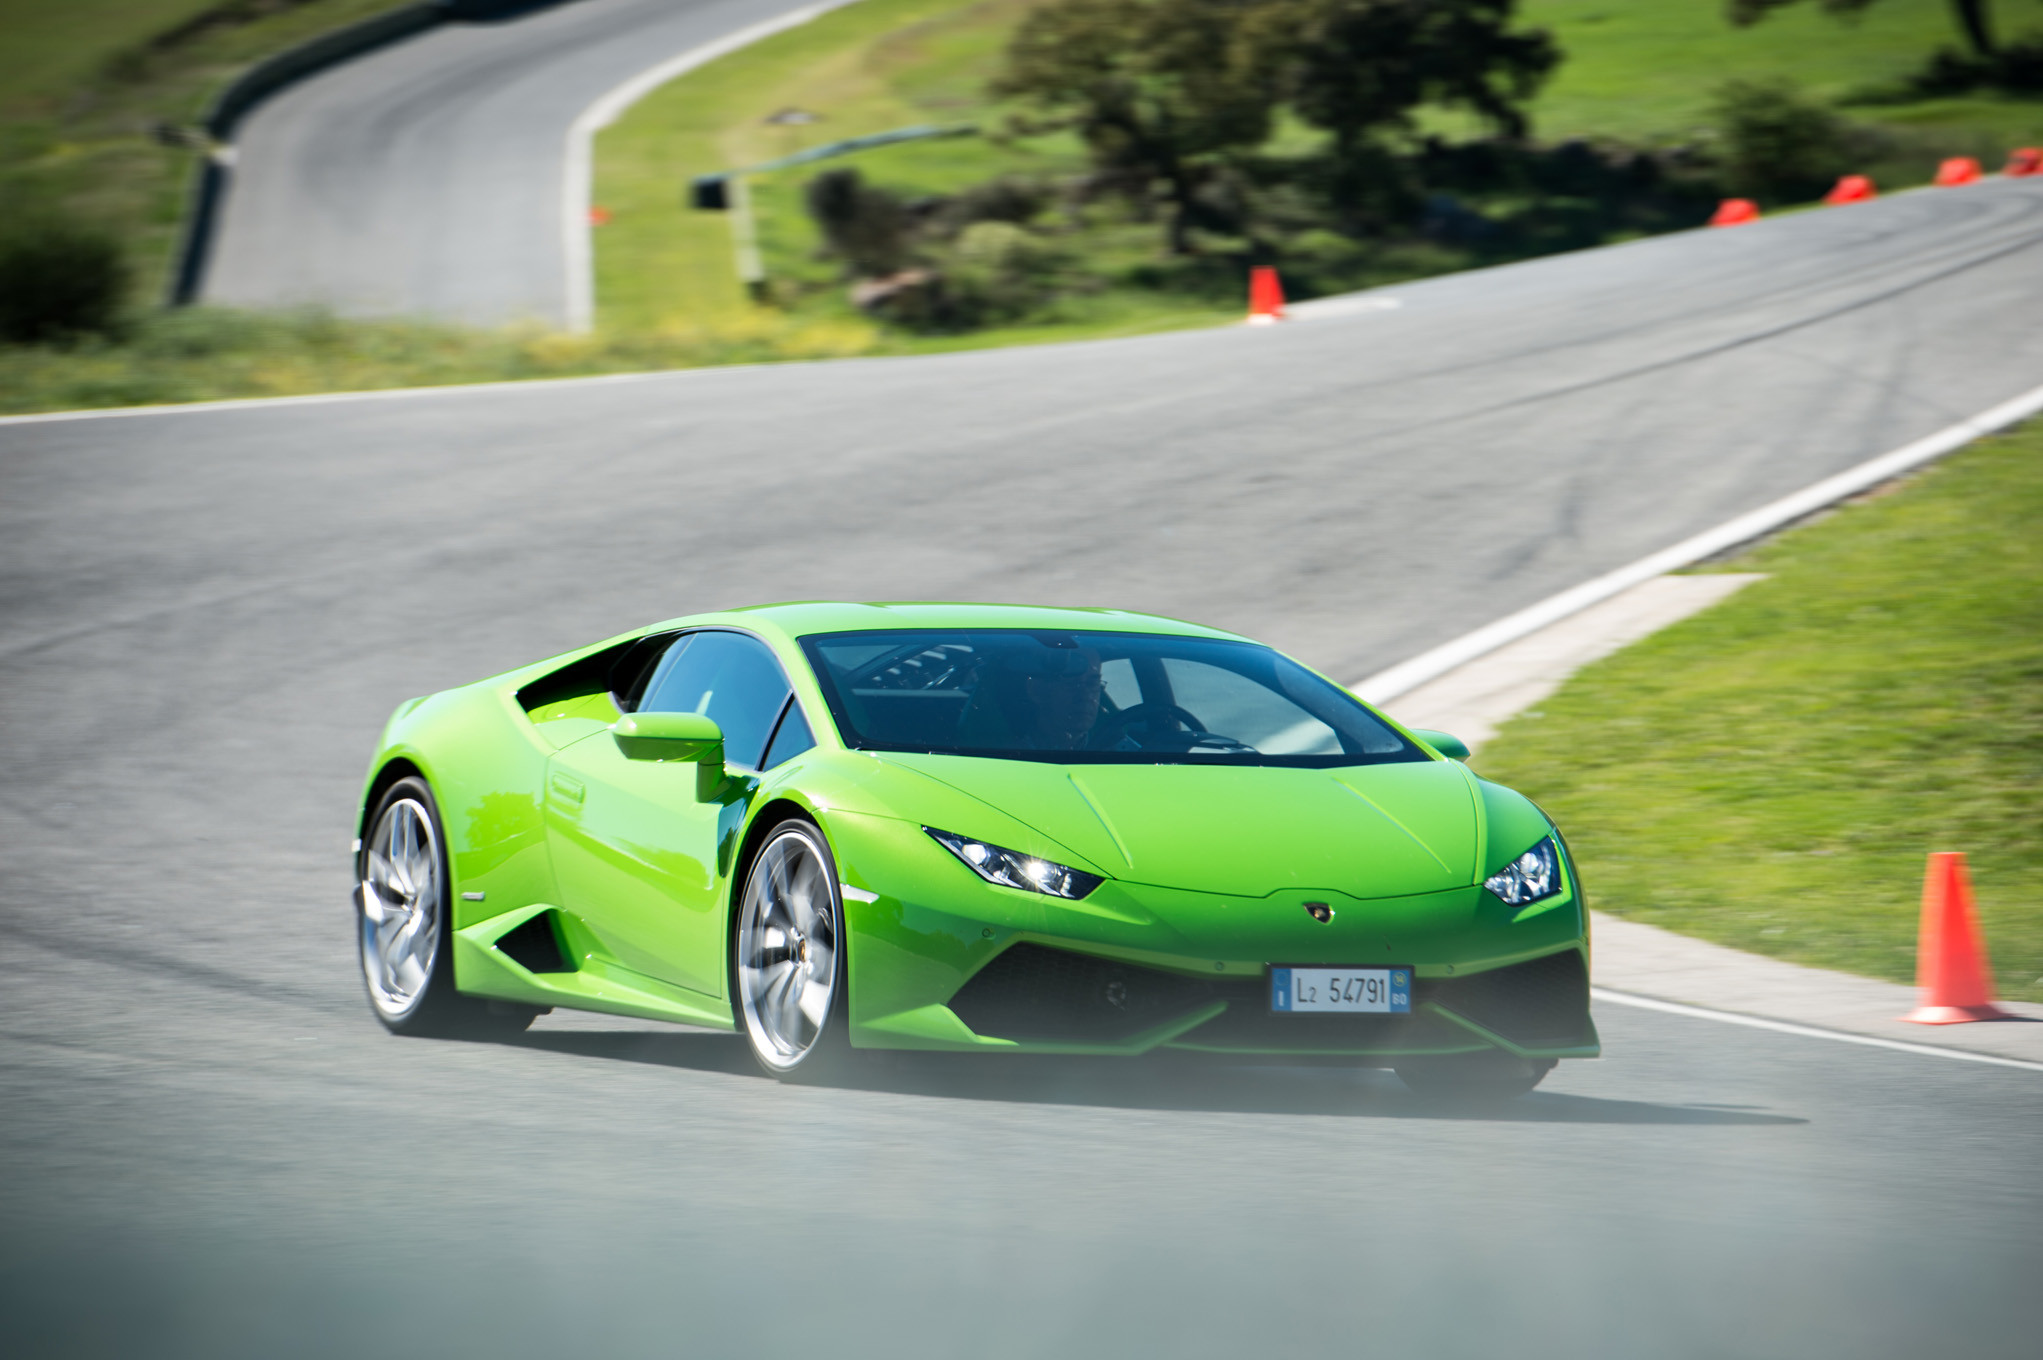 2043x1360 You can download Lamborghini Huracan Green Rear Hd Wallpapers here.  Lamborghini Huracan Green Rear Hd